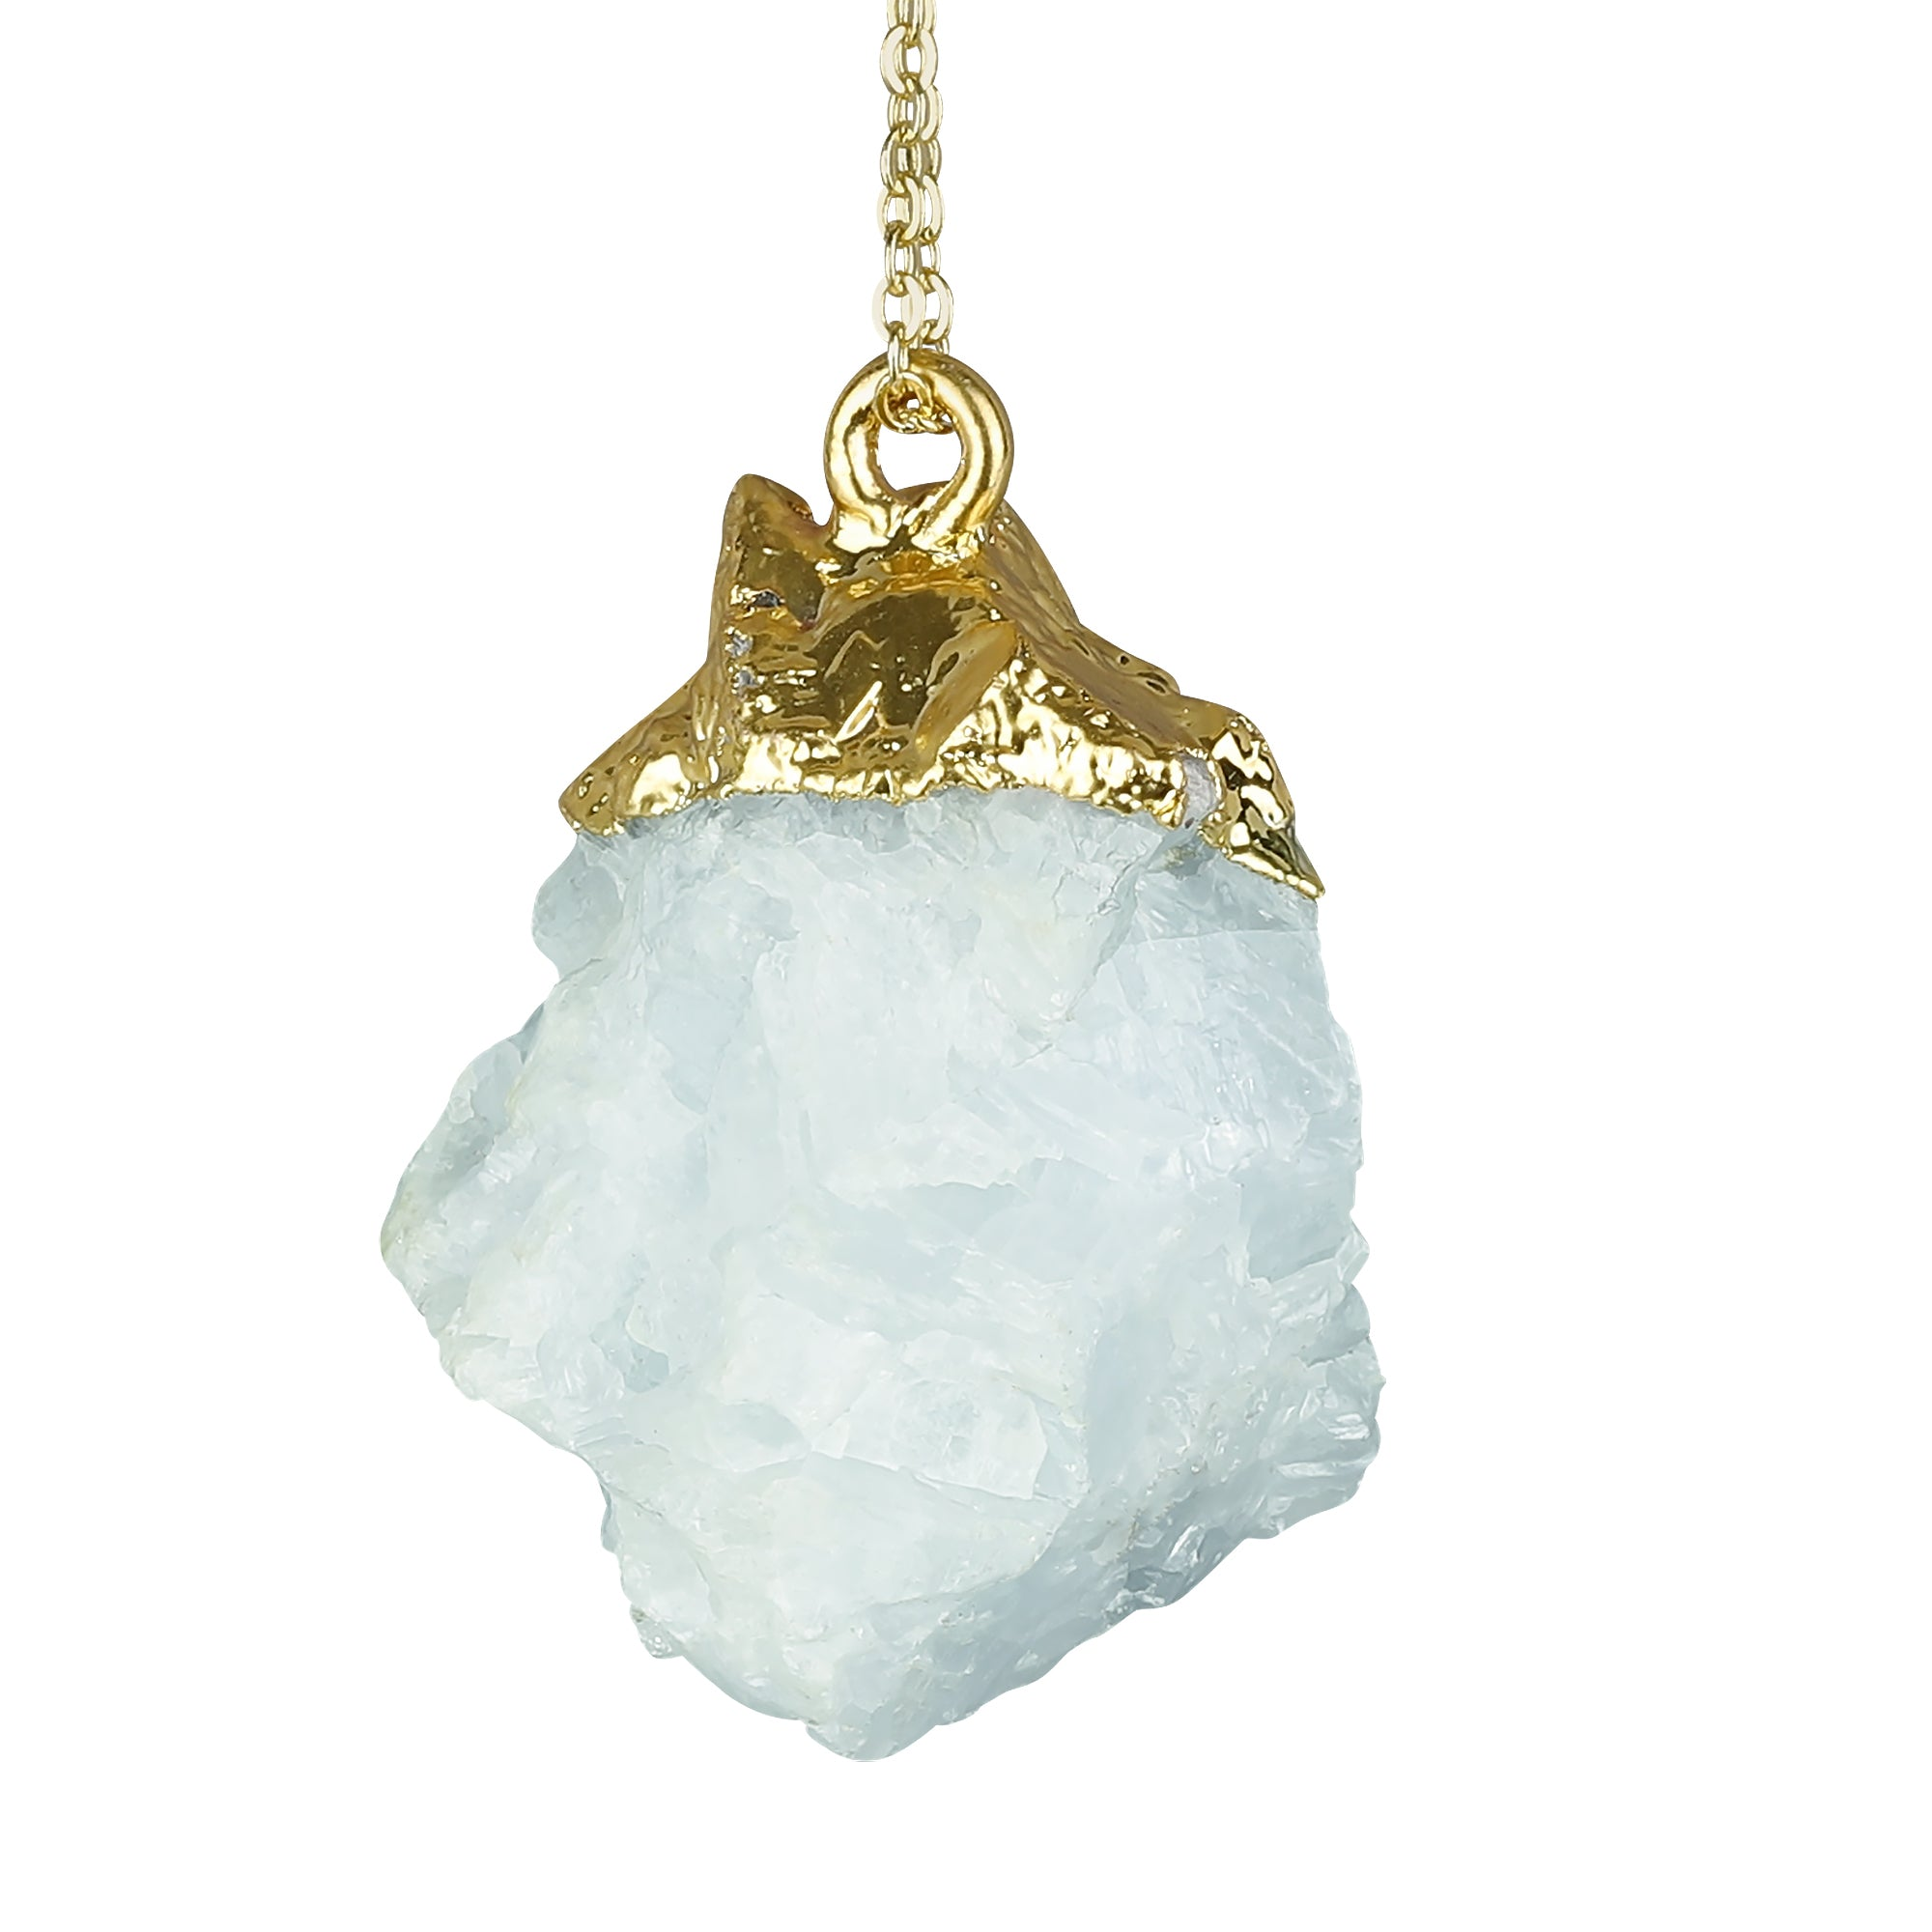 Aquamarine Rough Gemstone Necklace + Silatha Meditation App